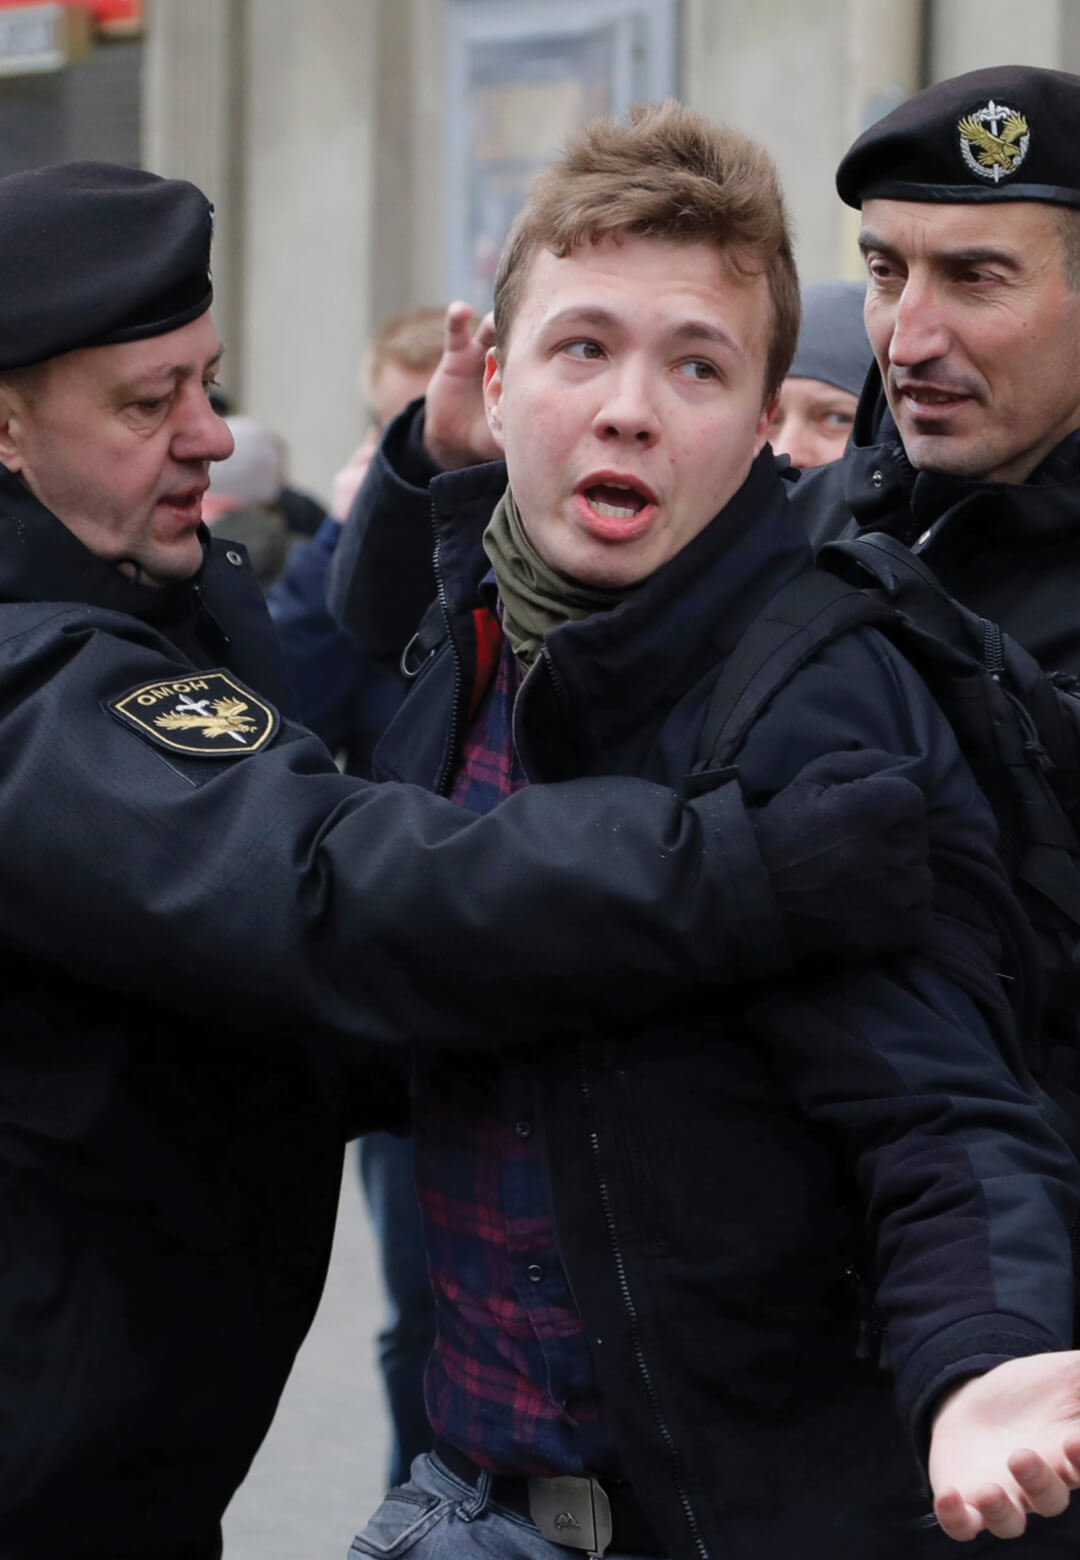 The unlawful arrest of Belarusian journalist Roman Protasevich is emblematic of the desperation shown by autocratic governments   Digital Legacies by Julius Wiedemann   STIRworld